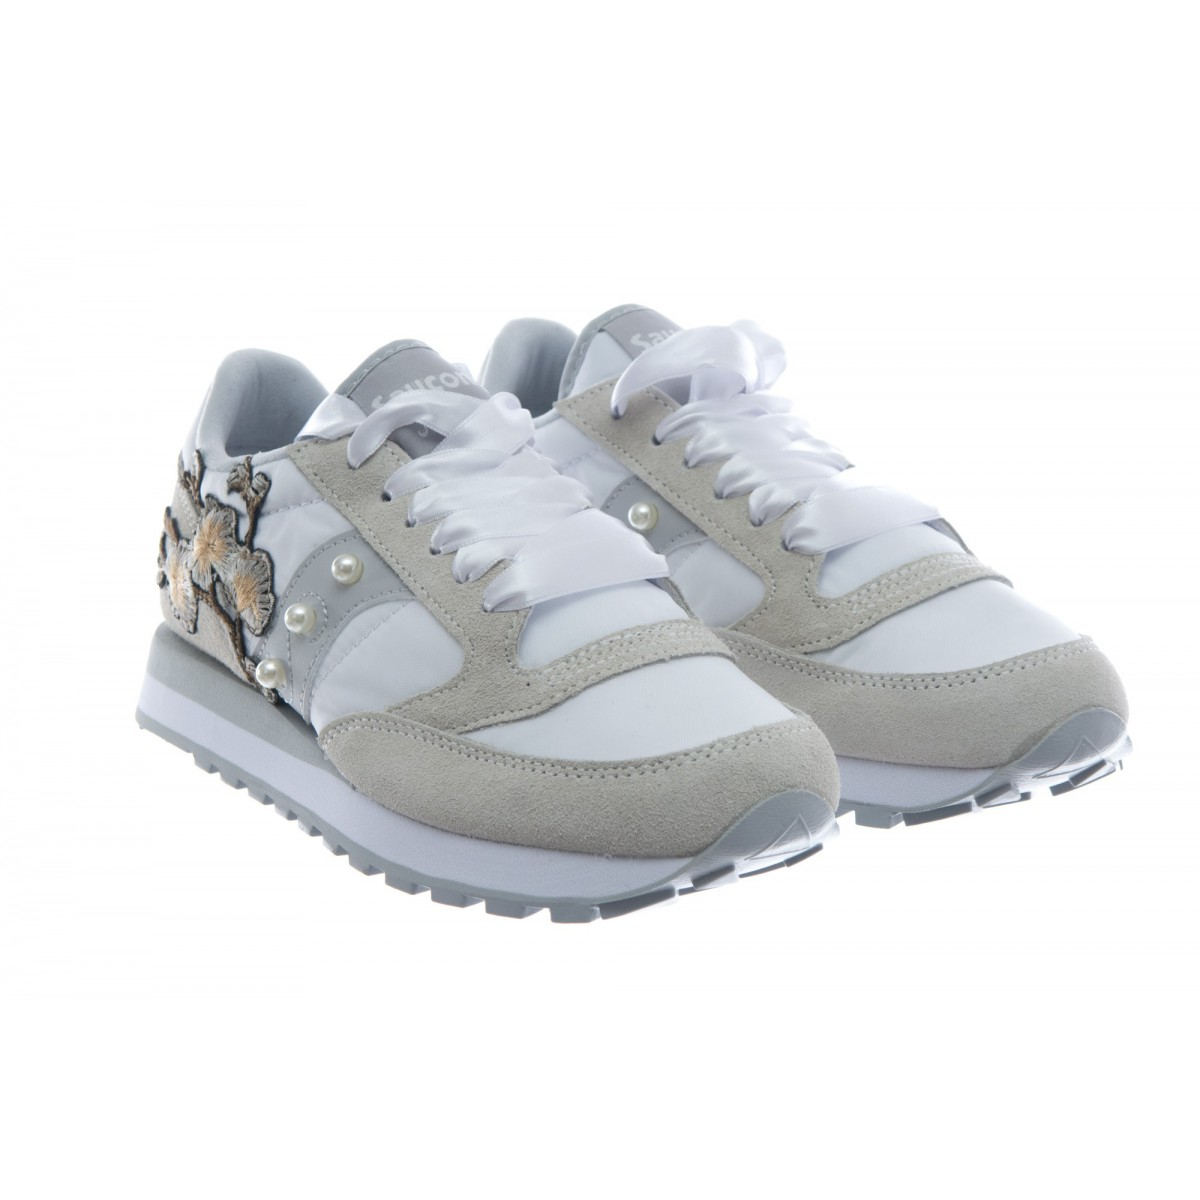 Sneakers - 2044 C1 jazz o peal smu limited edition